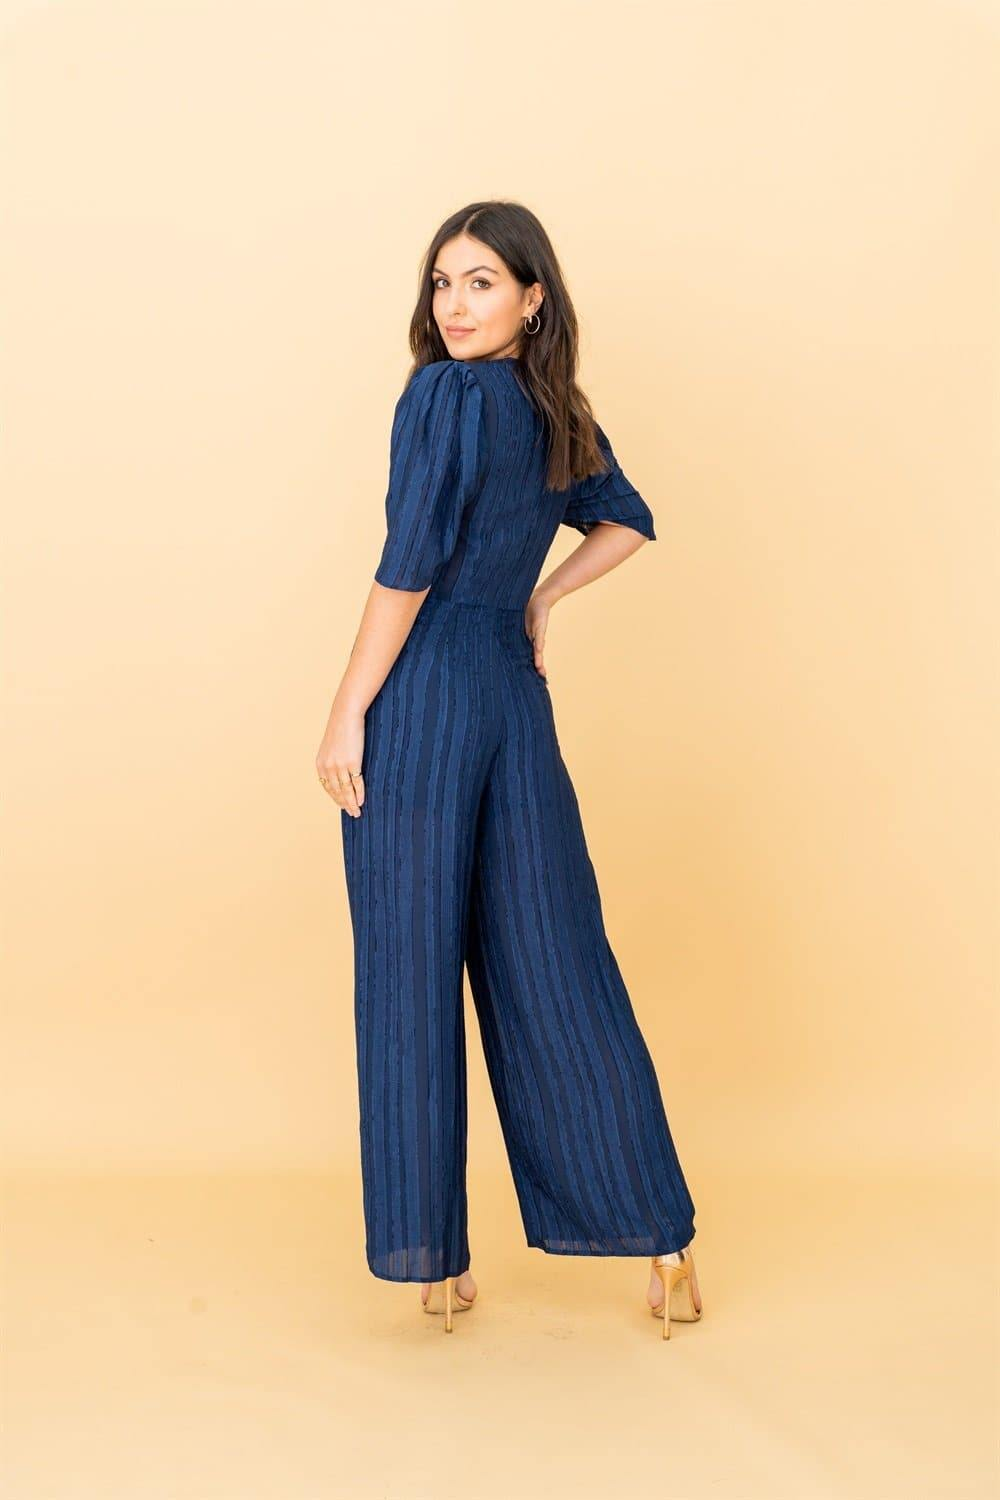 V-neck Plunge Jumpsuit in Navy Ruffle - Liena